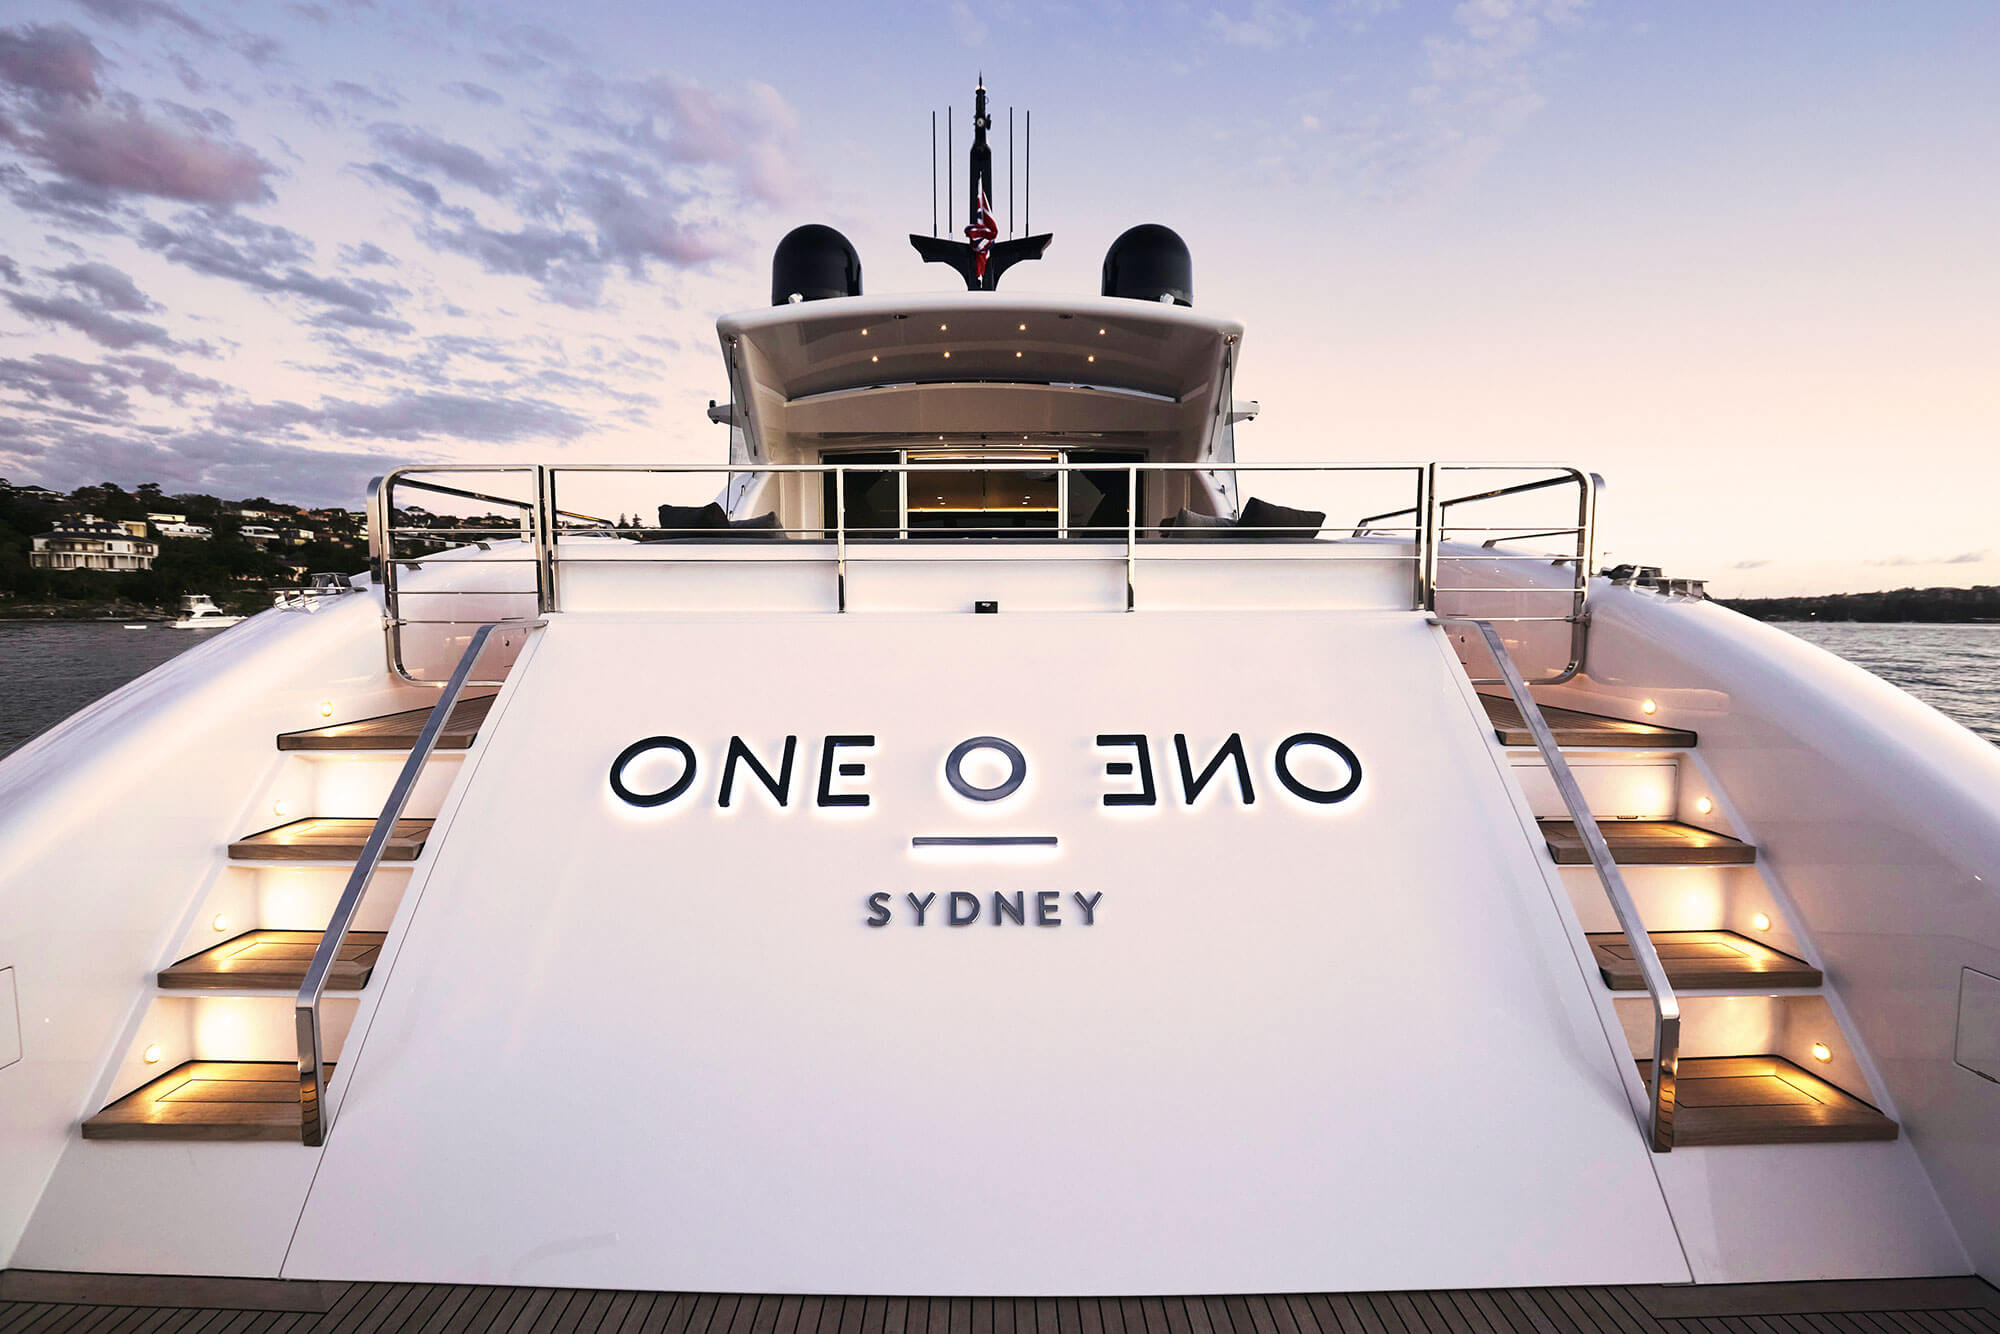 Close up of the back of the One O One Charter Yacht